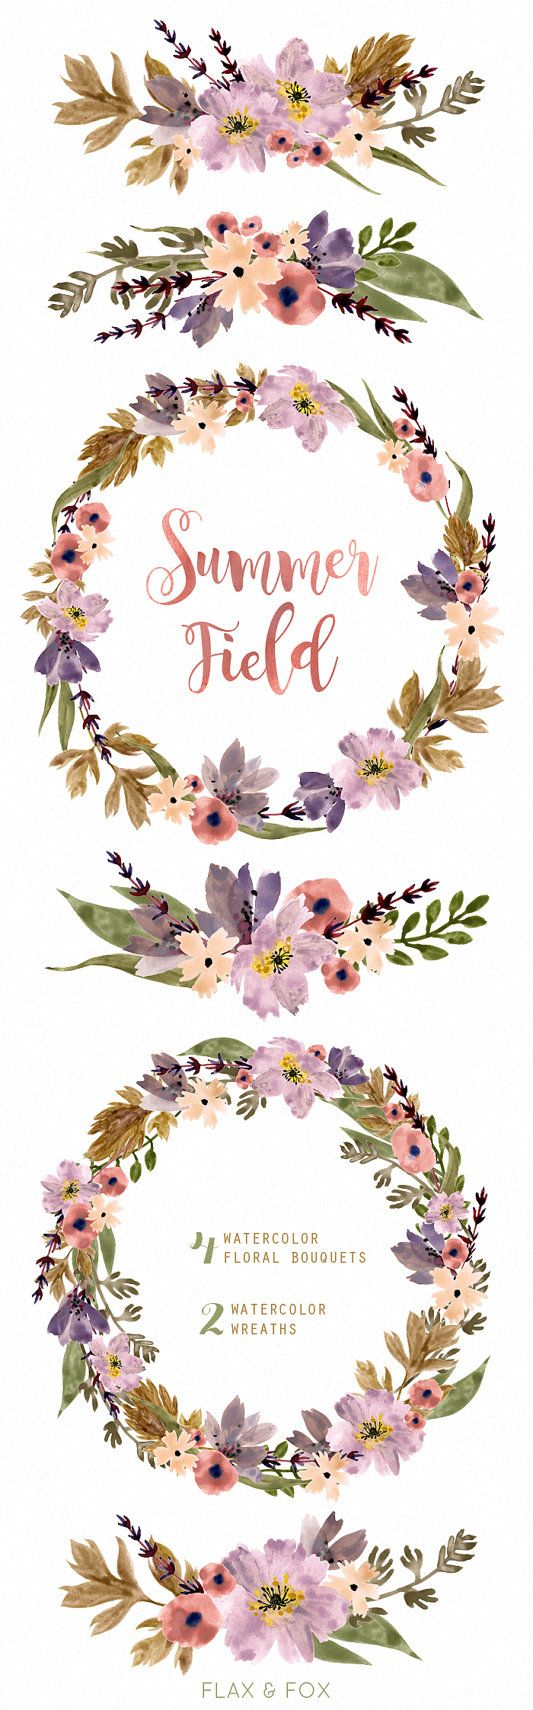 summer field watercolor bouquets wreath hand painted clipart